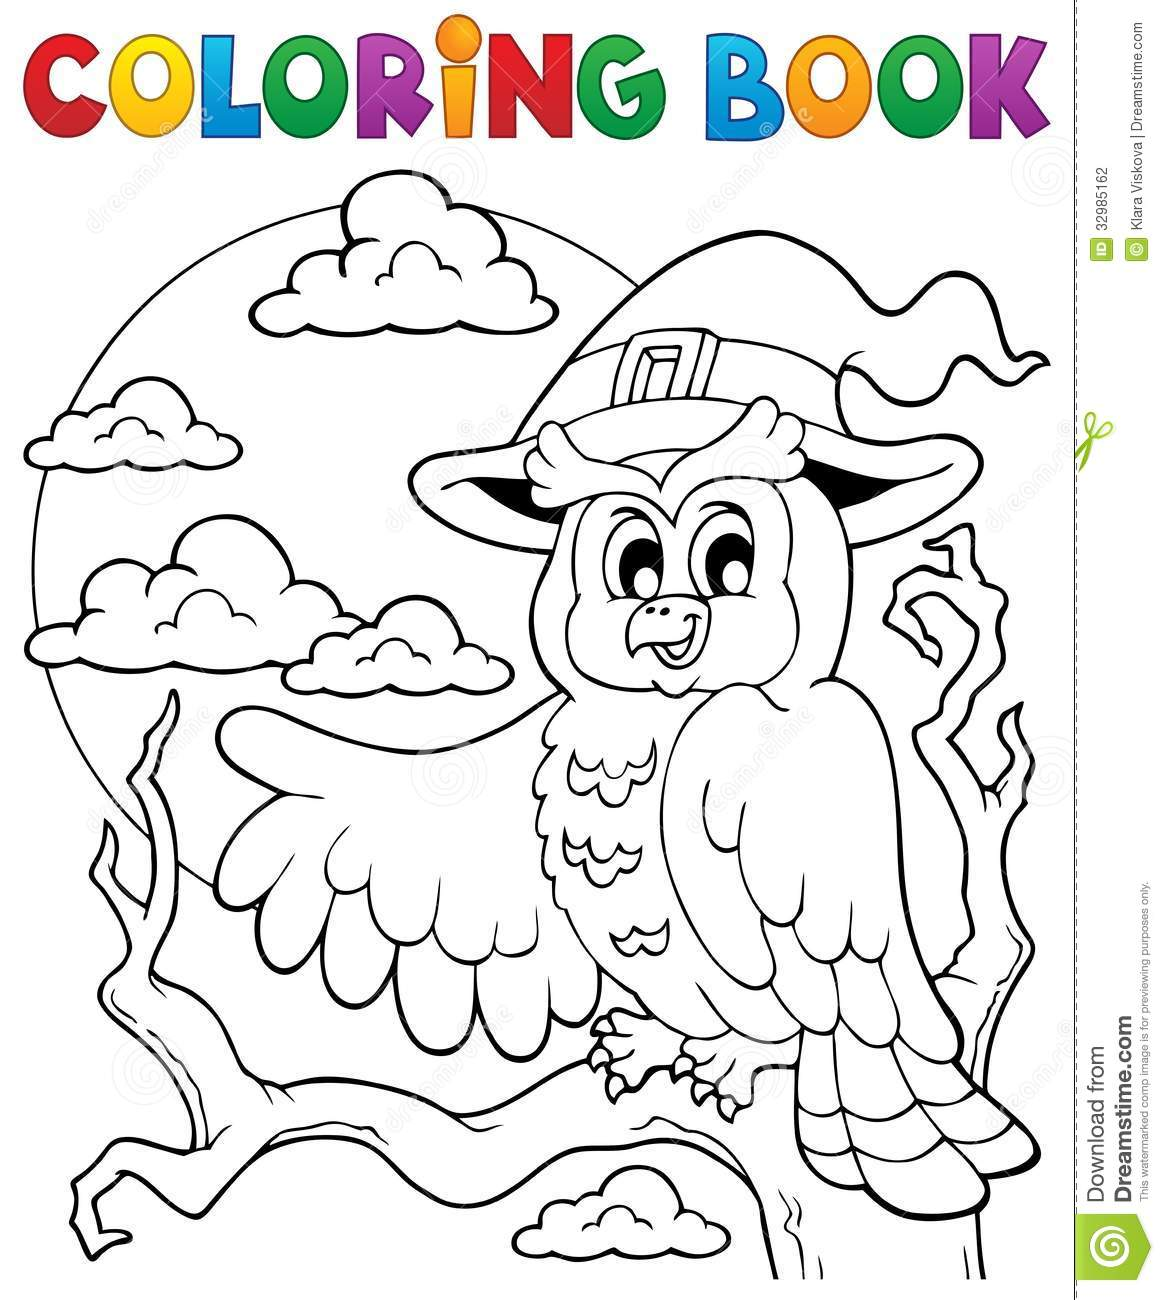 coloring book halloween owl 1 stock photography image 32985162